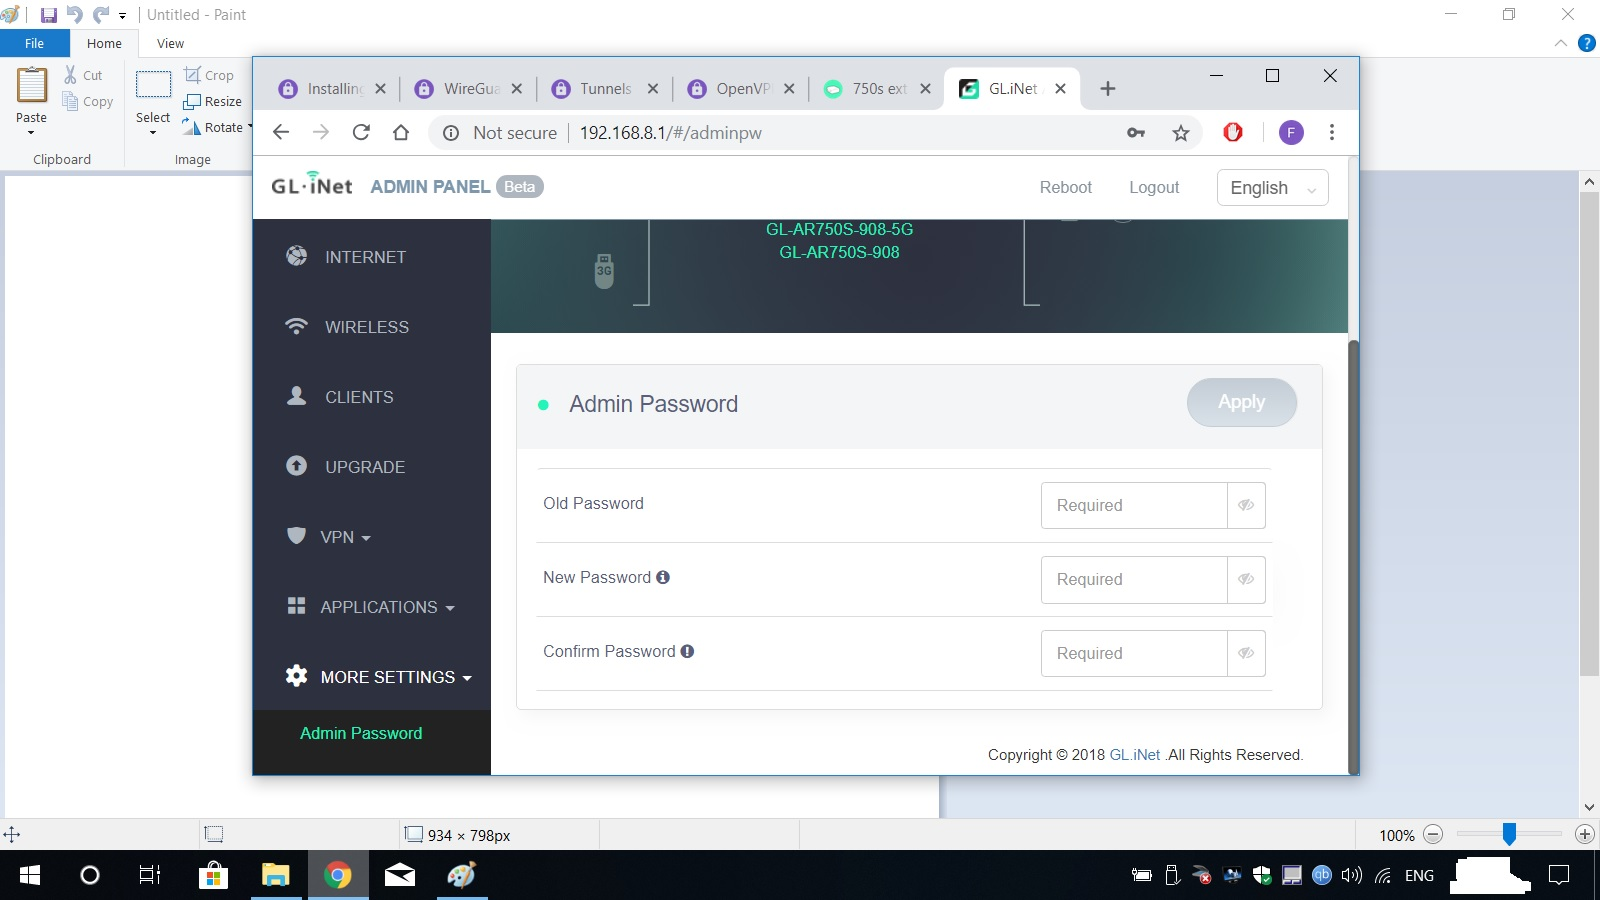 750s ext received and new vpn provider - routers - GL iNet